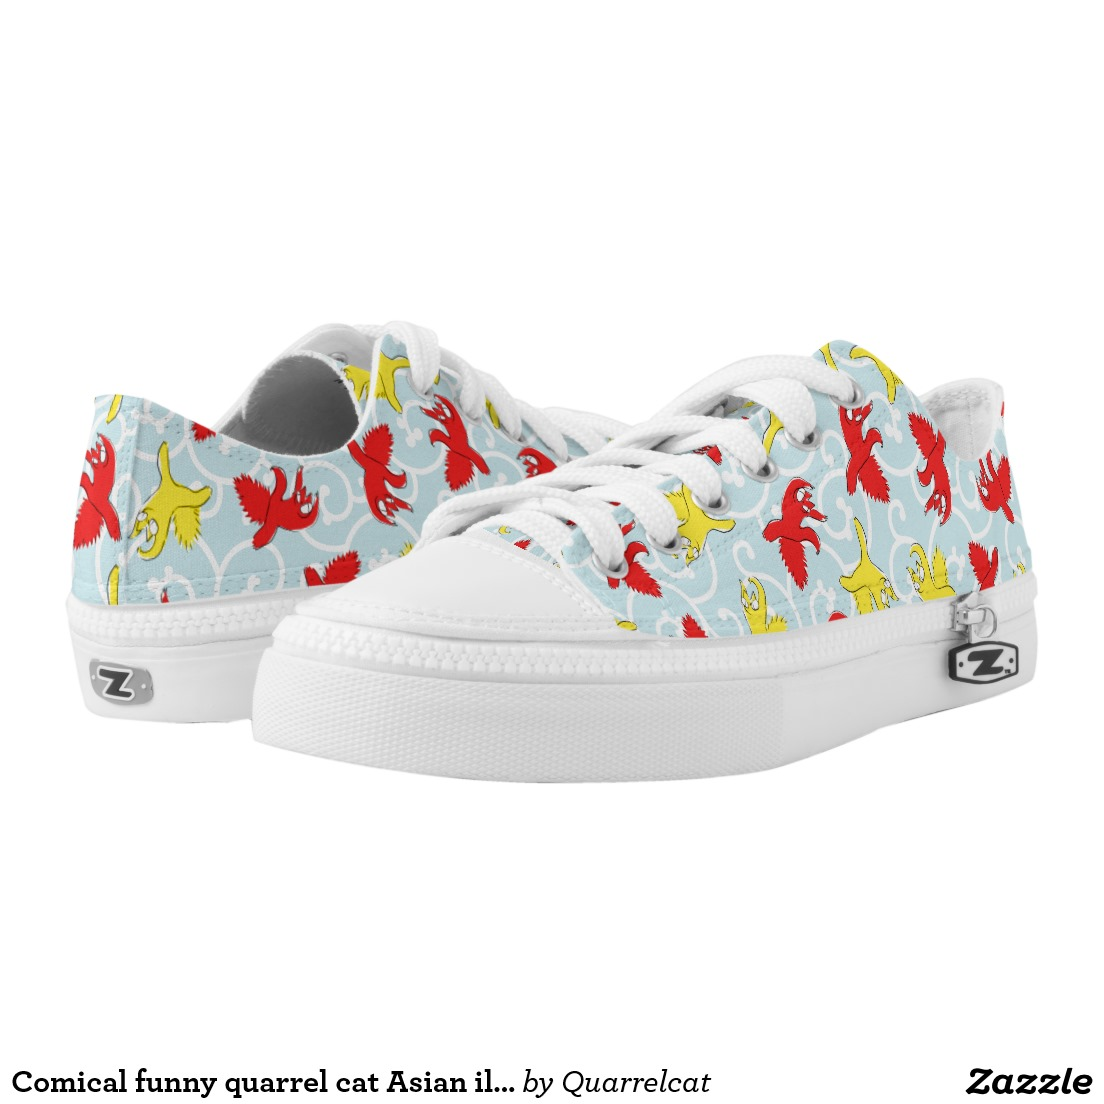 Comical funny quarrel cat Asian illustration Printed Shoes1